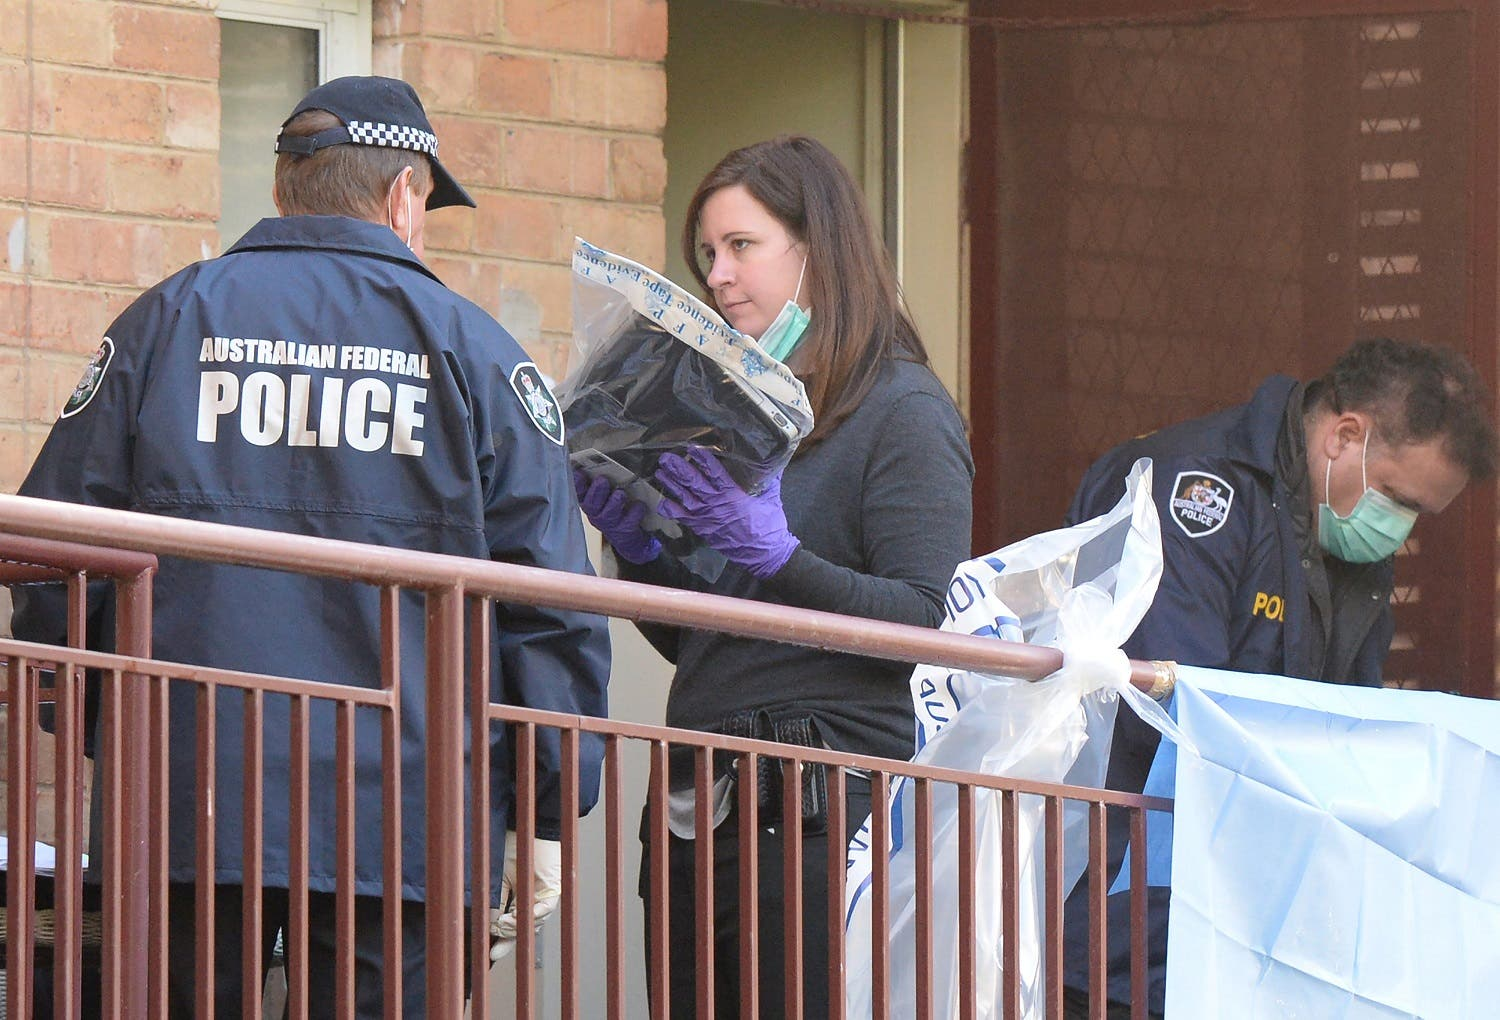 Australian police carry out raids at an apartment block in Melbourne, Australia, June 9, 2017 that are said to be linked to the deadly siege by a lone gunman in the country's second biggest city earlier in the week. (Reuters)